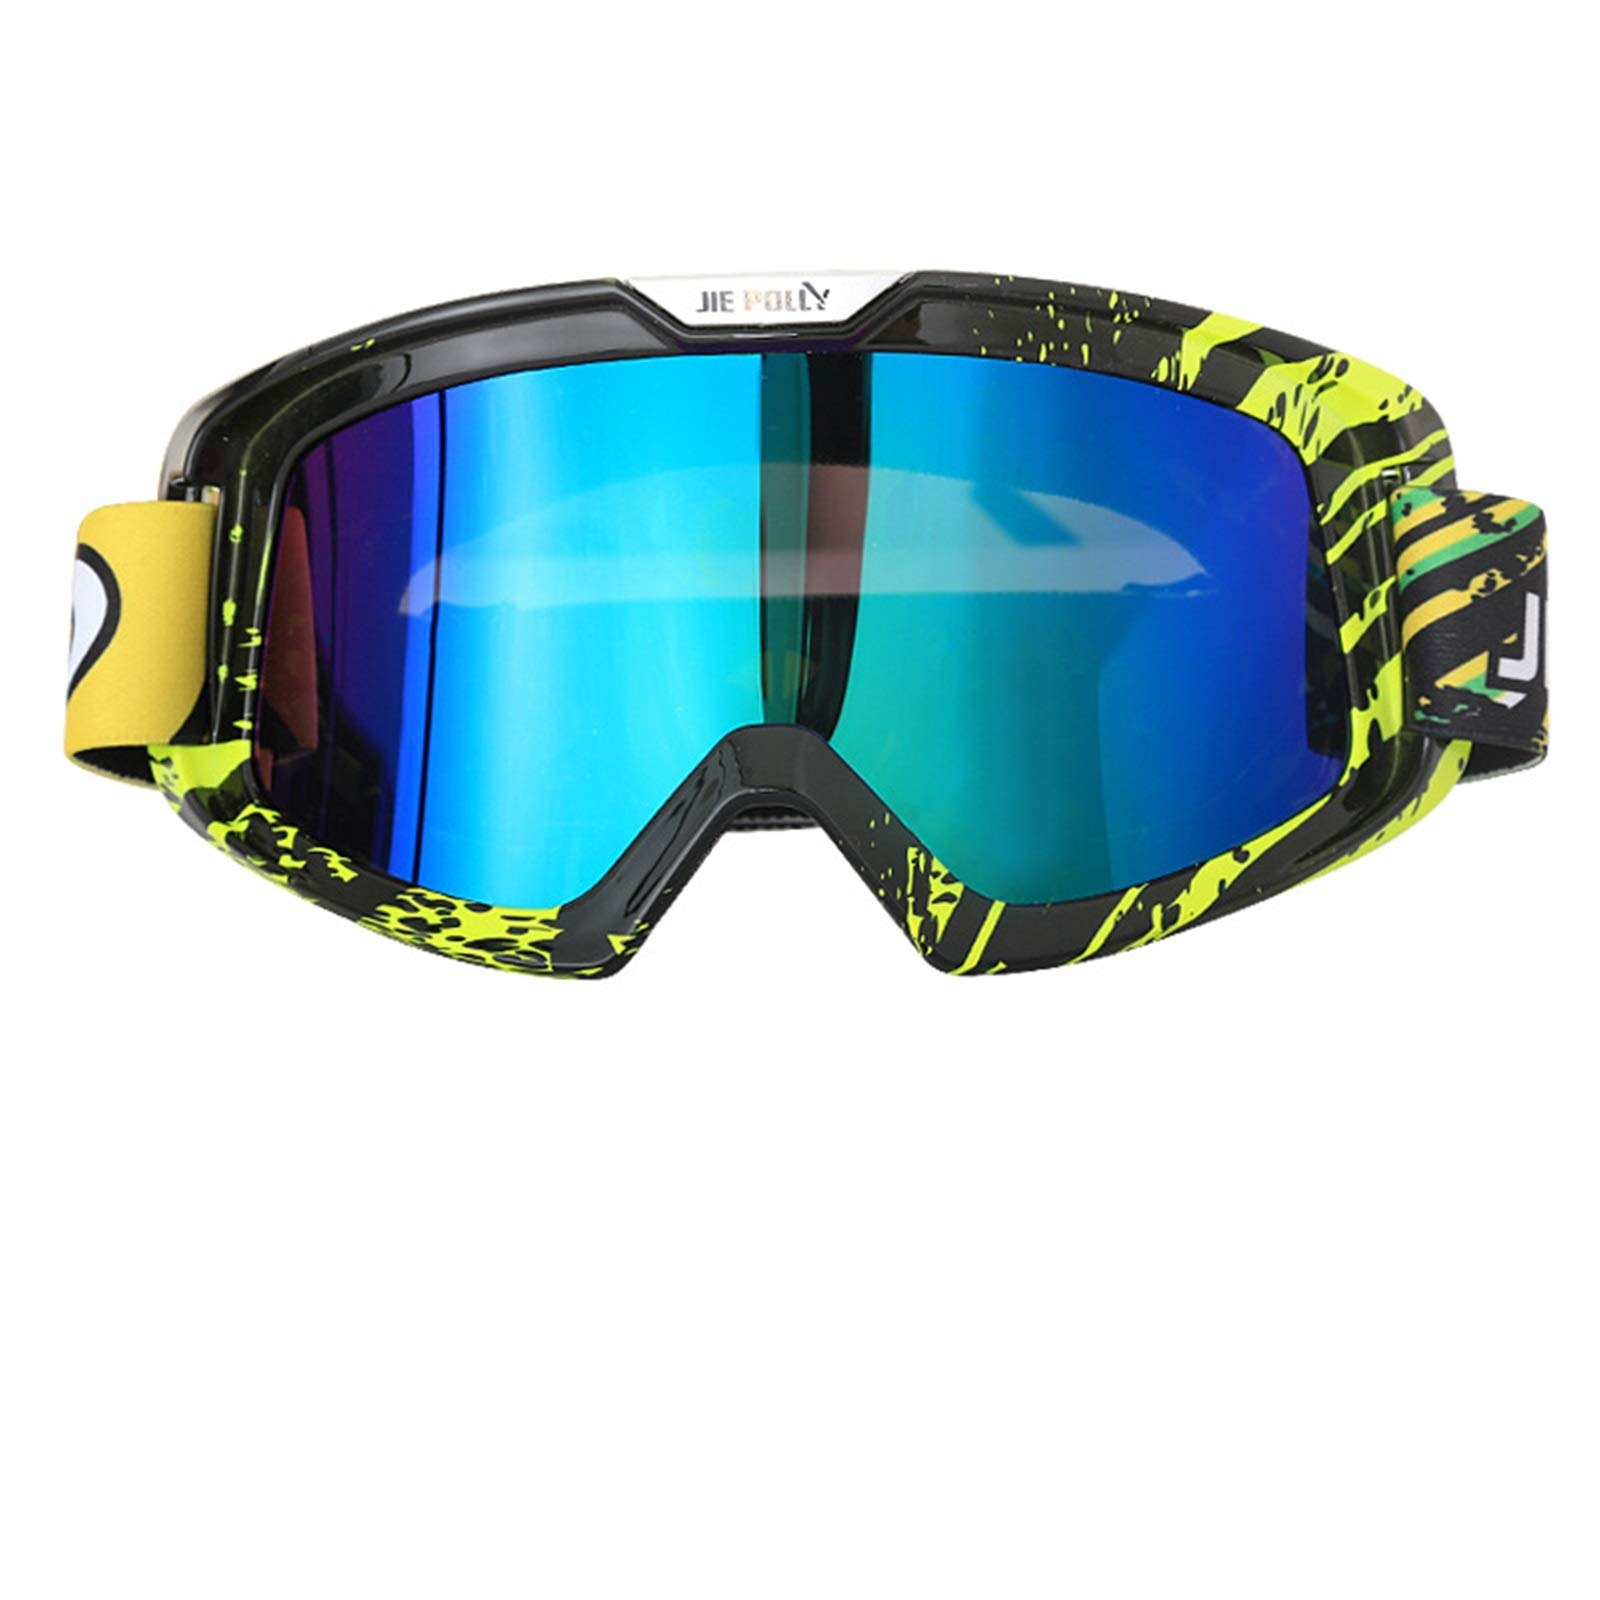 Adisaer Polarized Sunglasses Motorcycle Equipment Off-Road ski Sand-Proof Goggles Colorful A05 for Adults